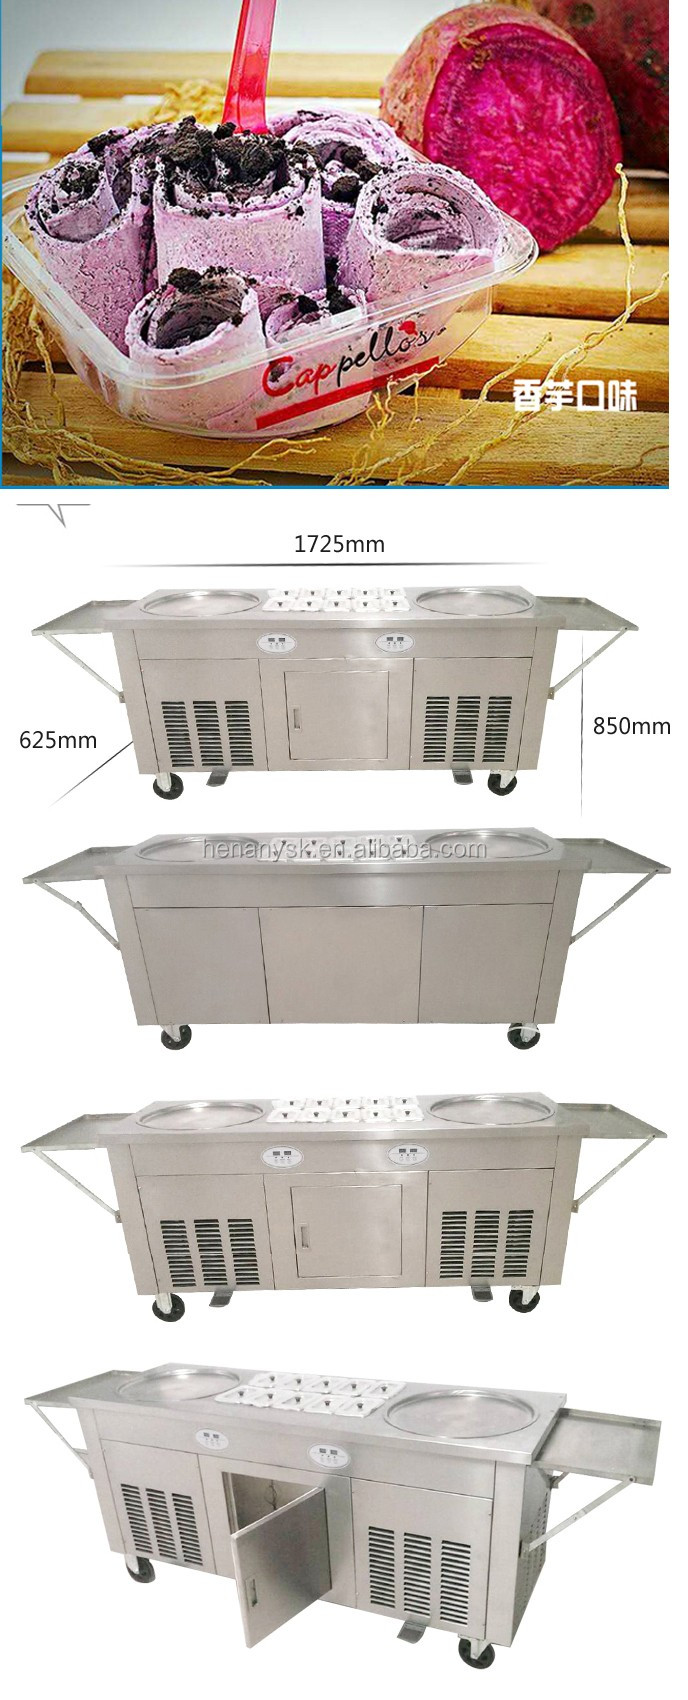 Double Round Pans 10 Topping Pans Ice Cream Ice Pan Roller Rolling Rolled Flat Fried Machine